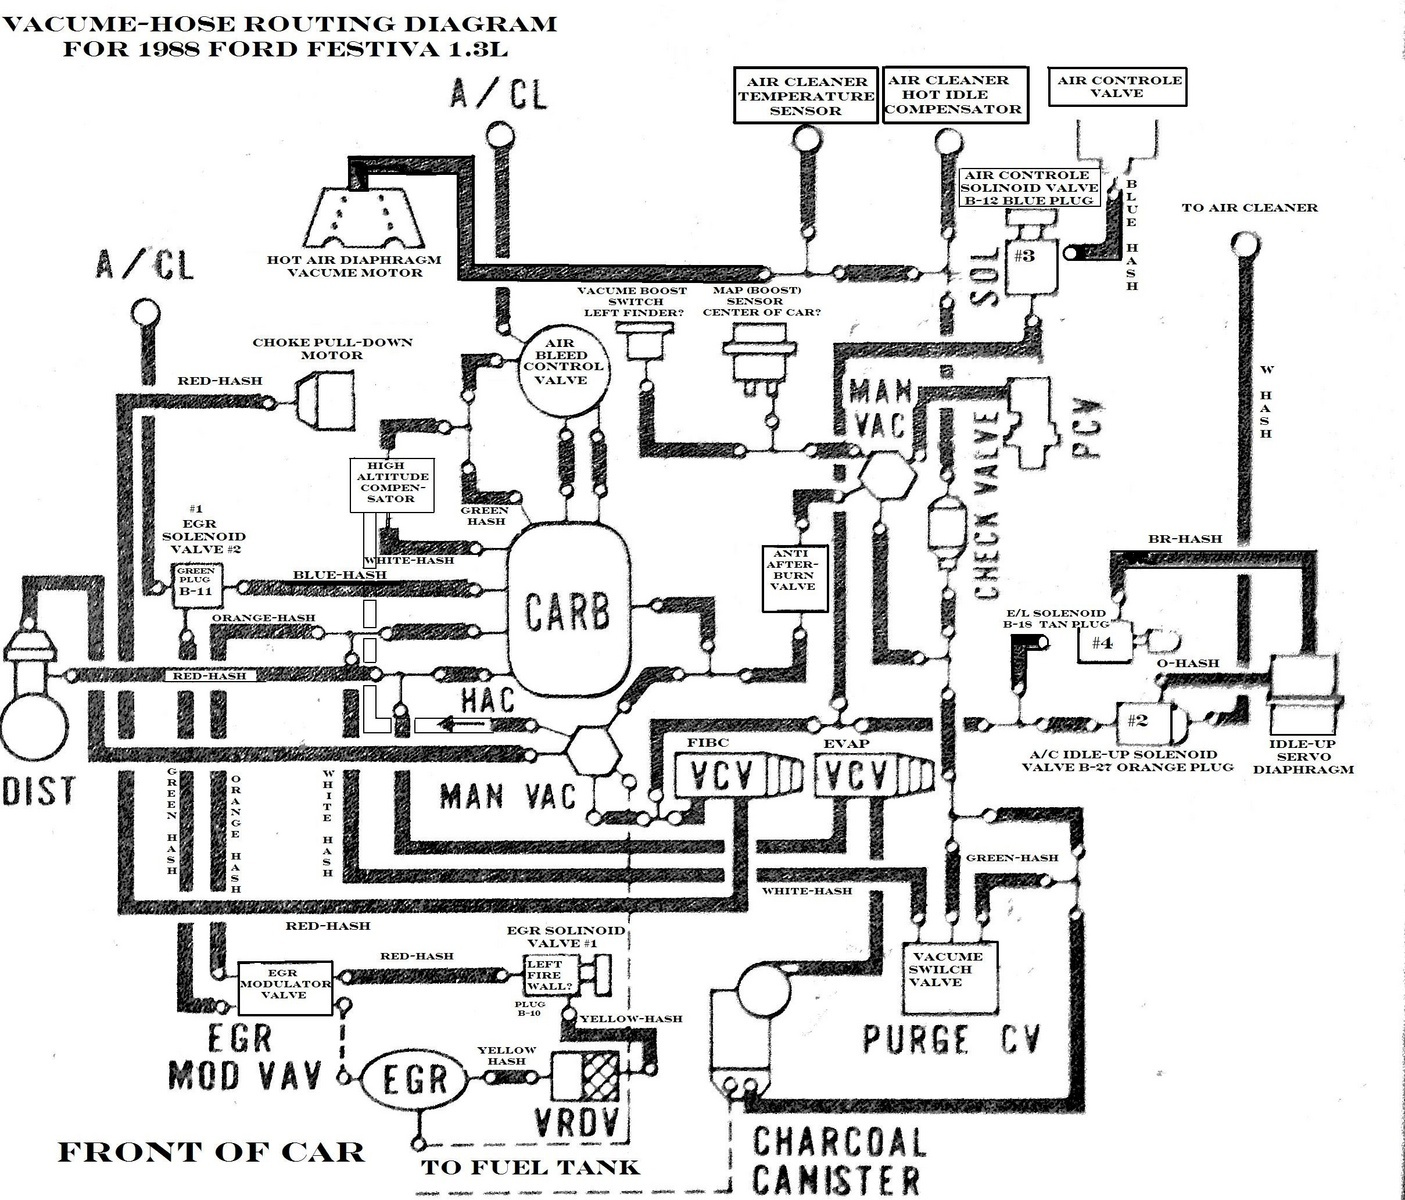 ford festiva wiring diagram ford festiva questions - getting better fuel mileage ...